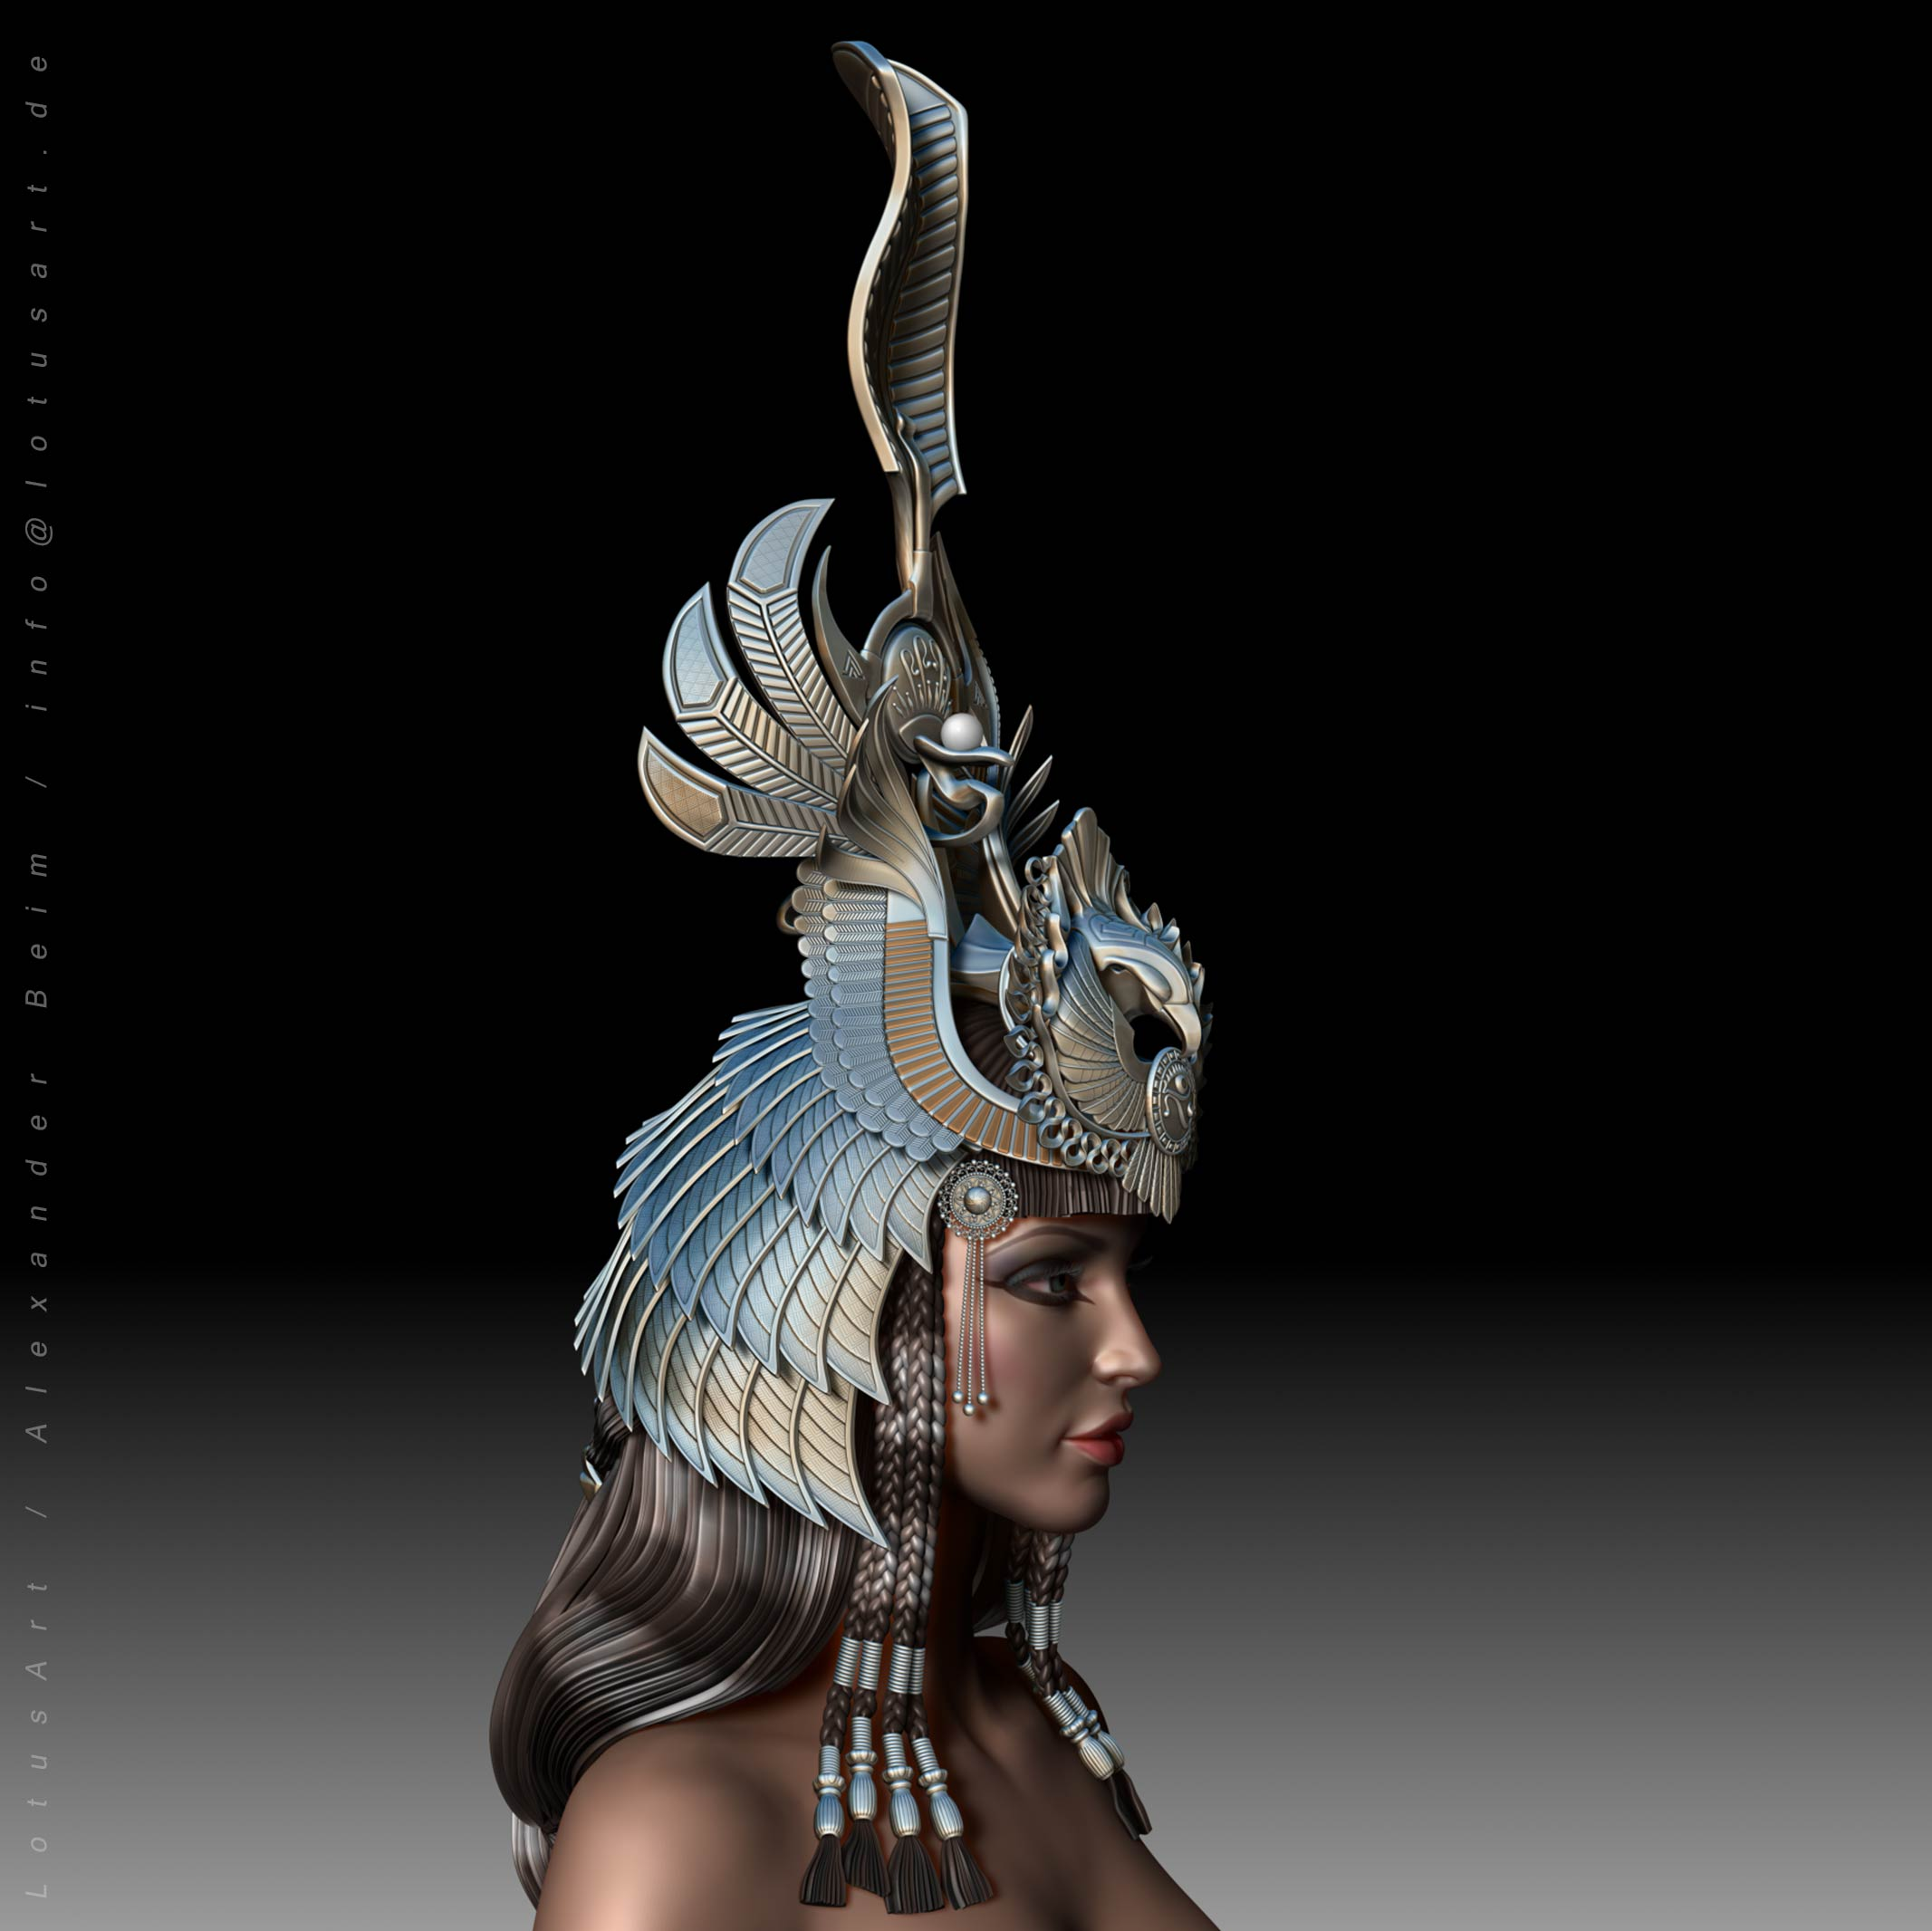 3d_modeling_character_woman_egypt CG Blog